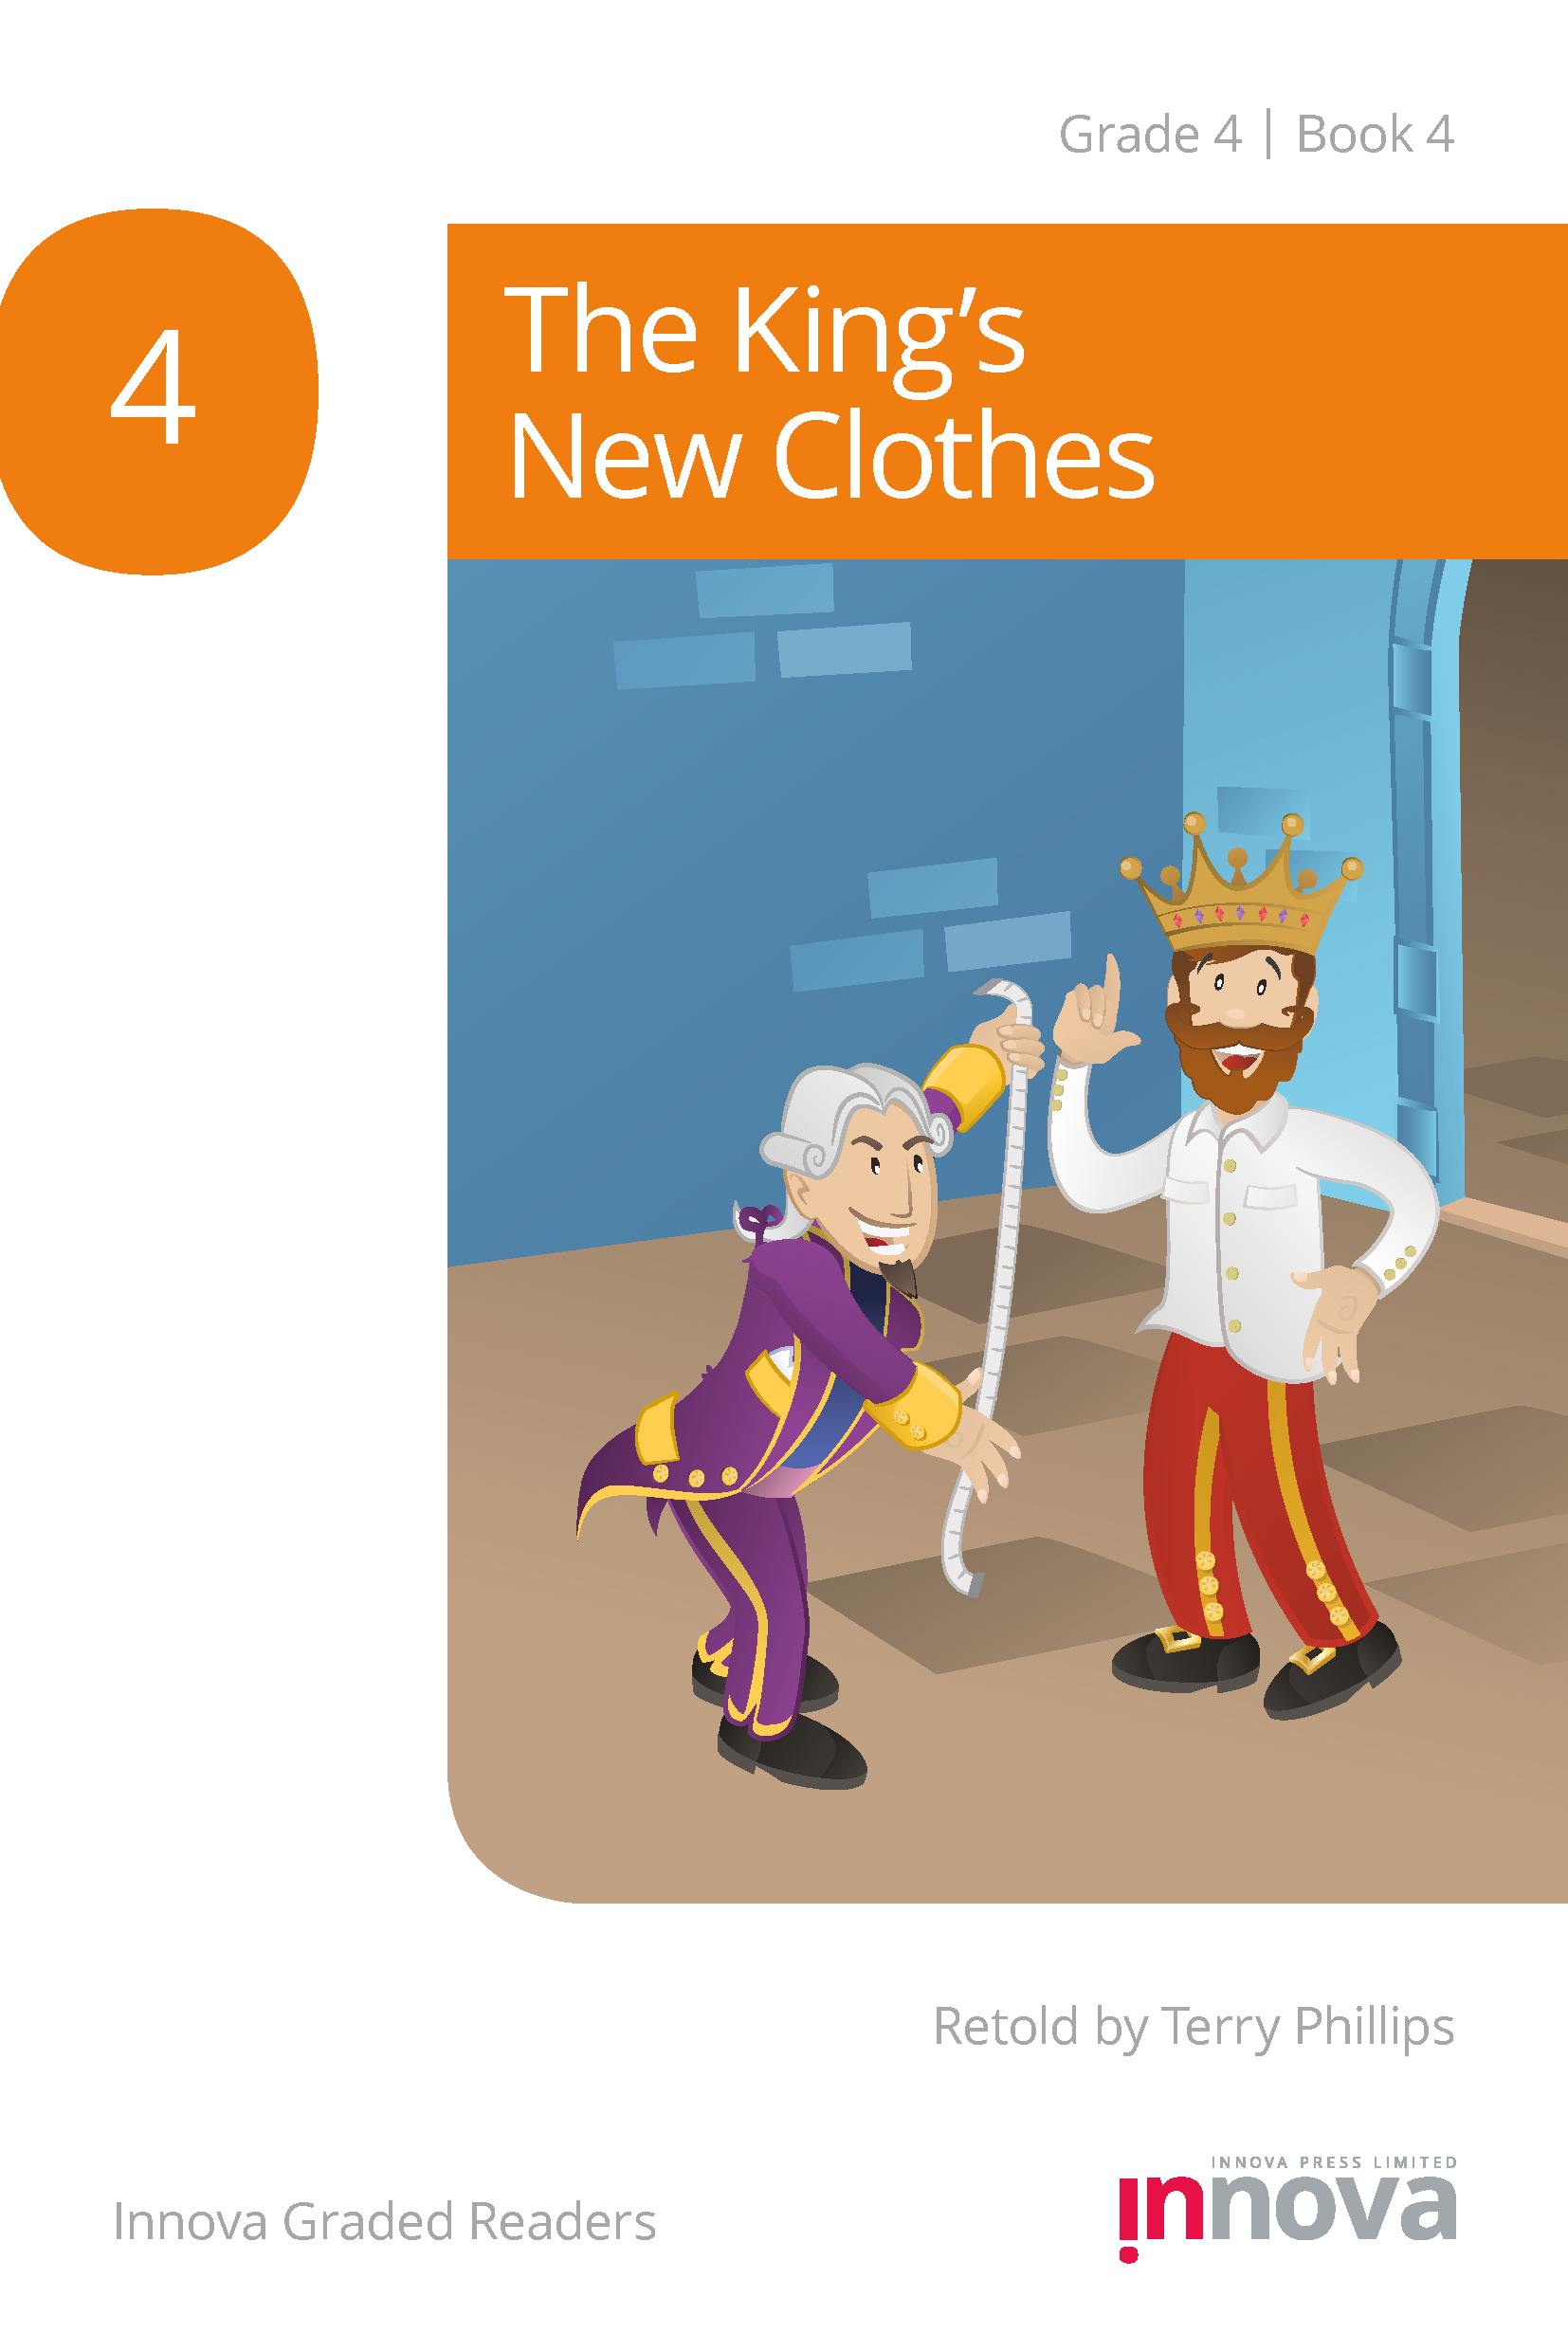 Innova Press The King's New Clothes cover, a man in a purple suit hold a tape measure next to a man in a crown